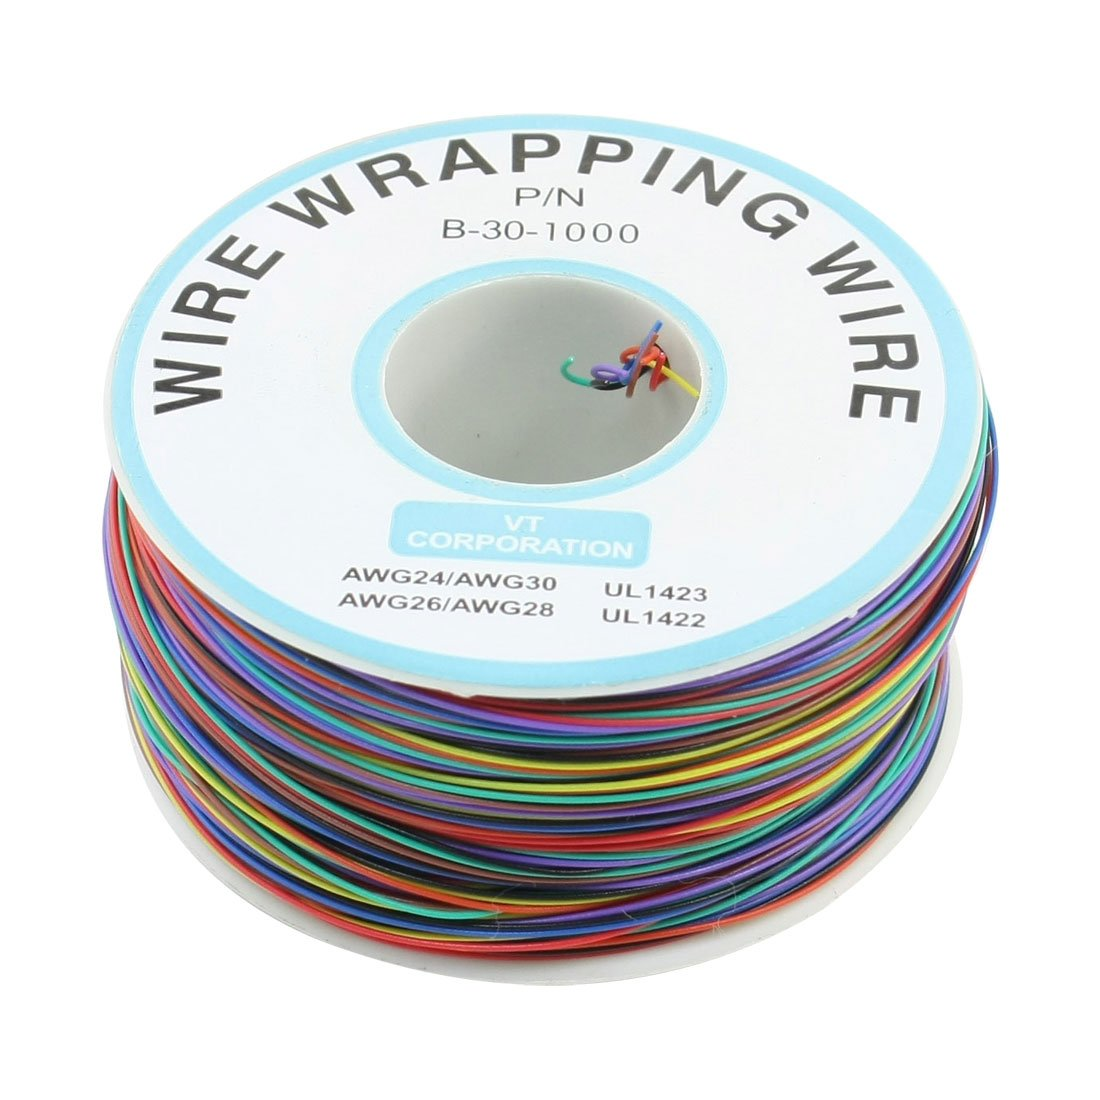 THGS P N B 30 1000 200M 30AWG 8 Wire Colored Insulation Test Wrapping Cable